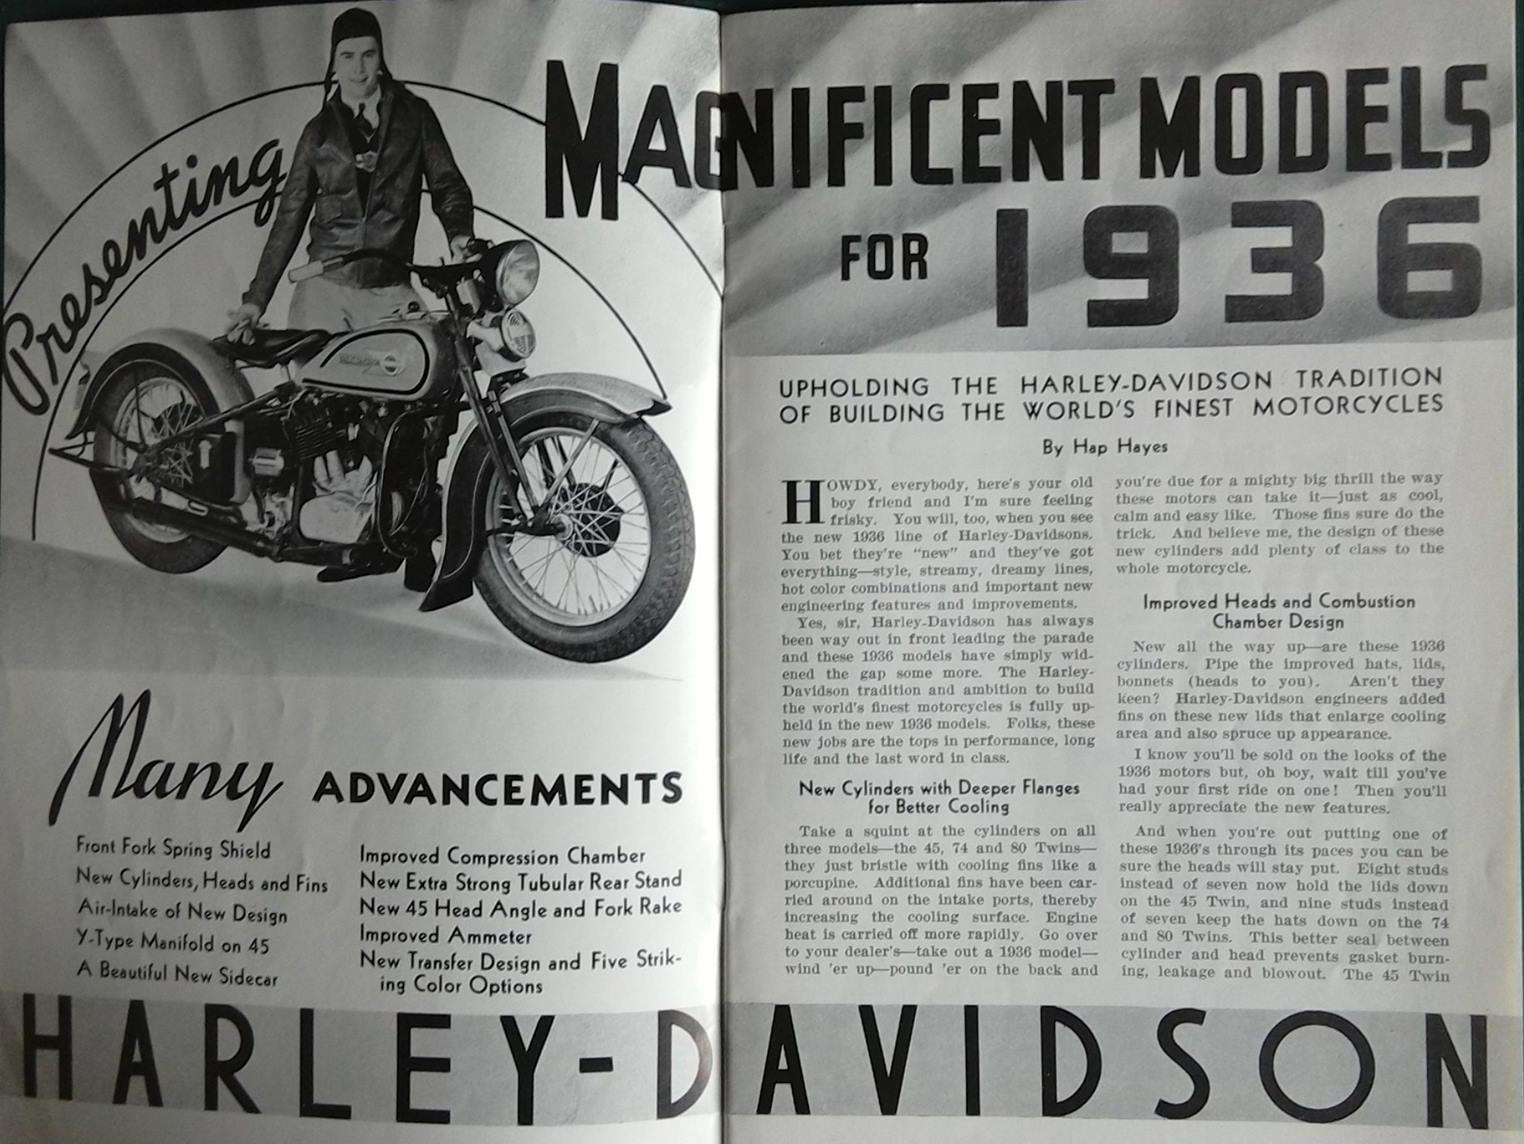 01 - Magnificent models for 1936